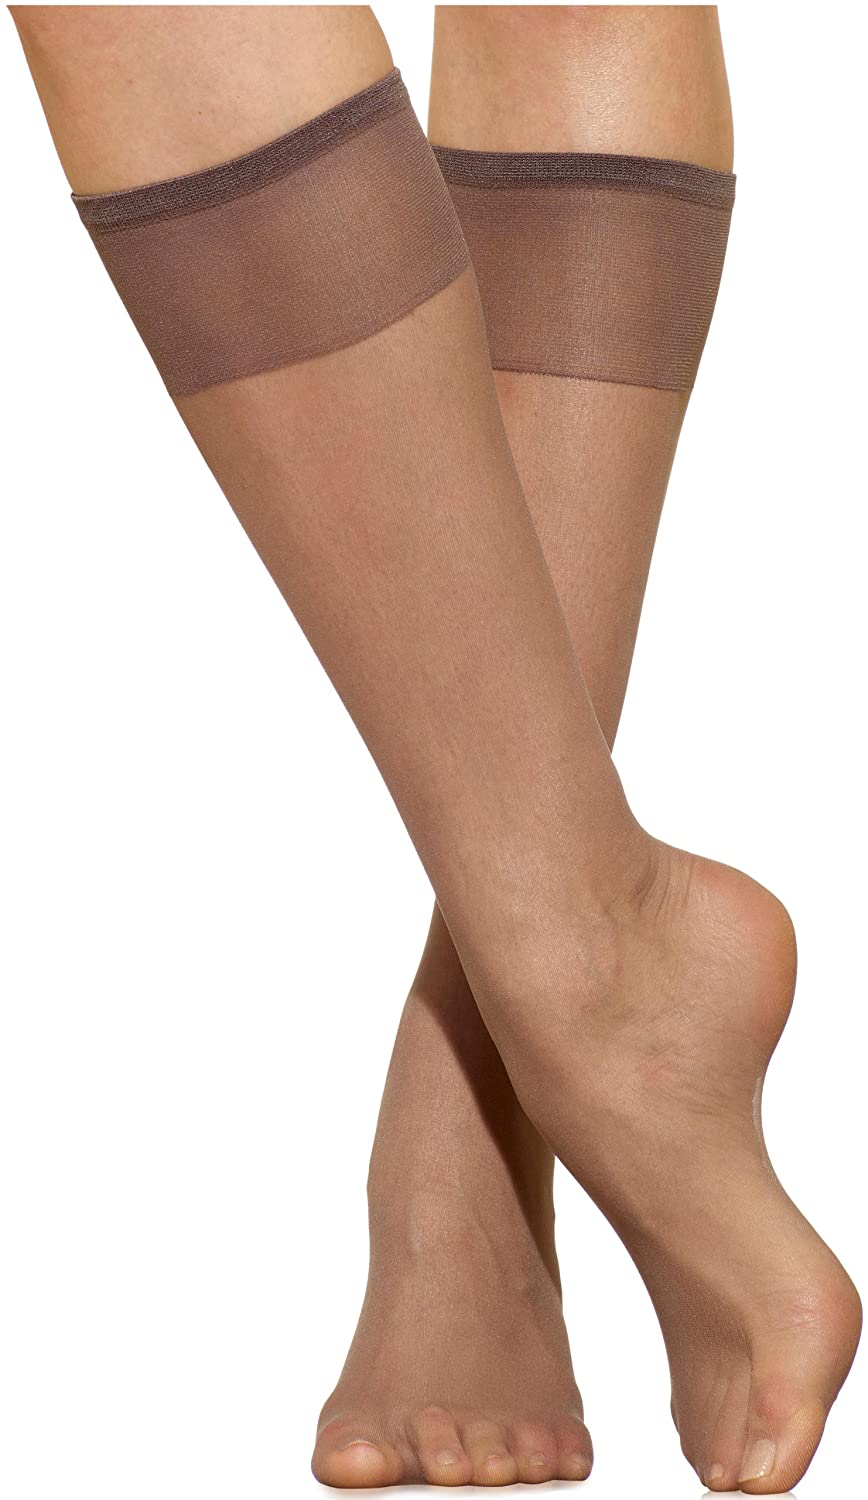 Silkies Women's Ultra Knee Highs with Energizing Support 3 Pair Pack SILKIES-ULTRA-KNEE-His-parent